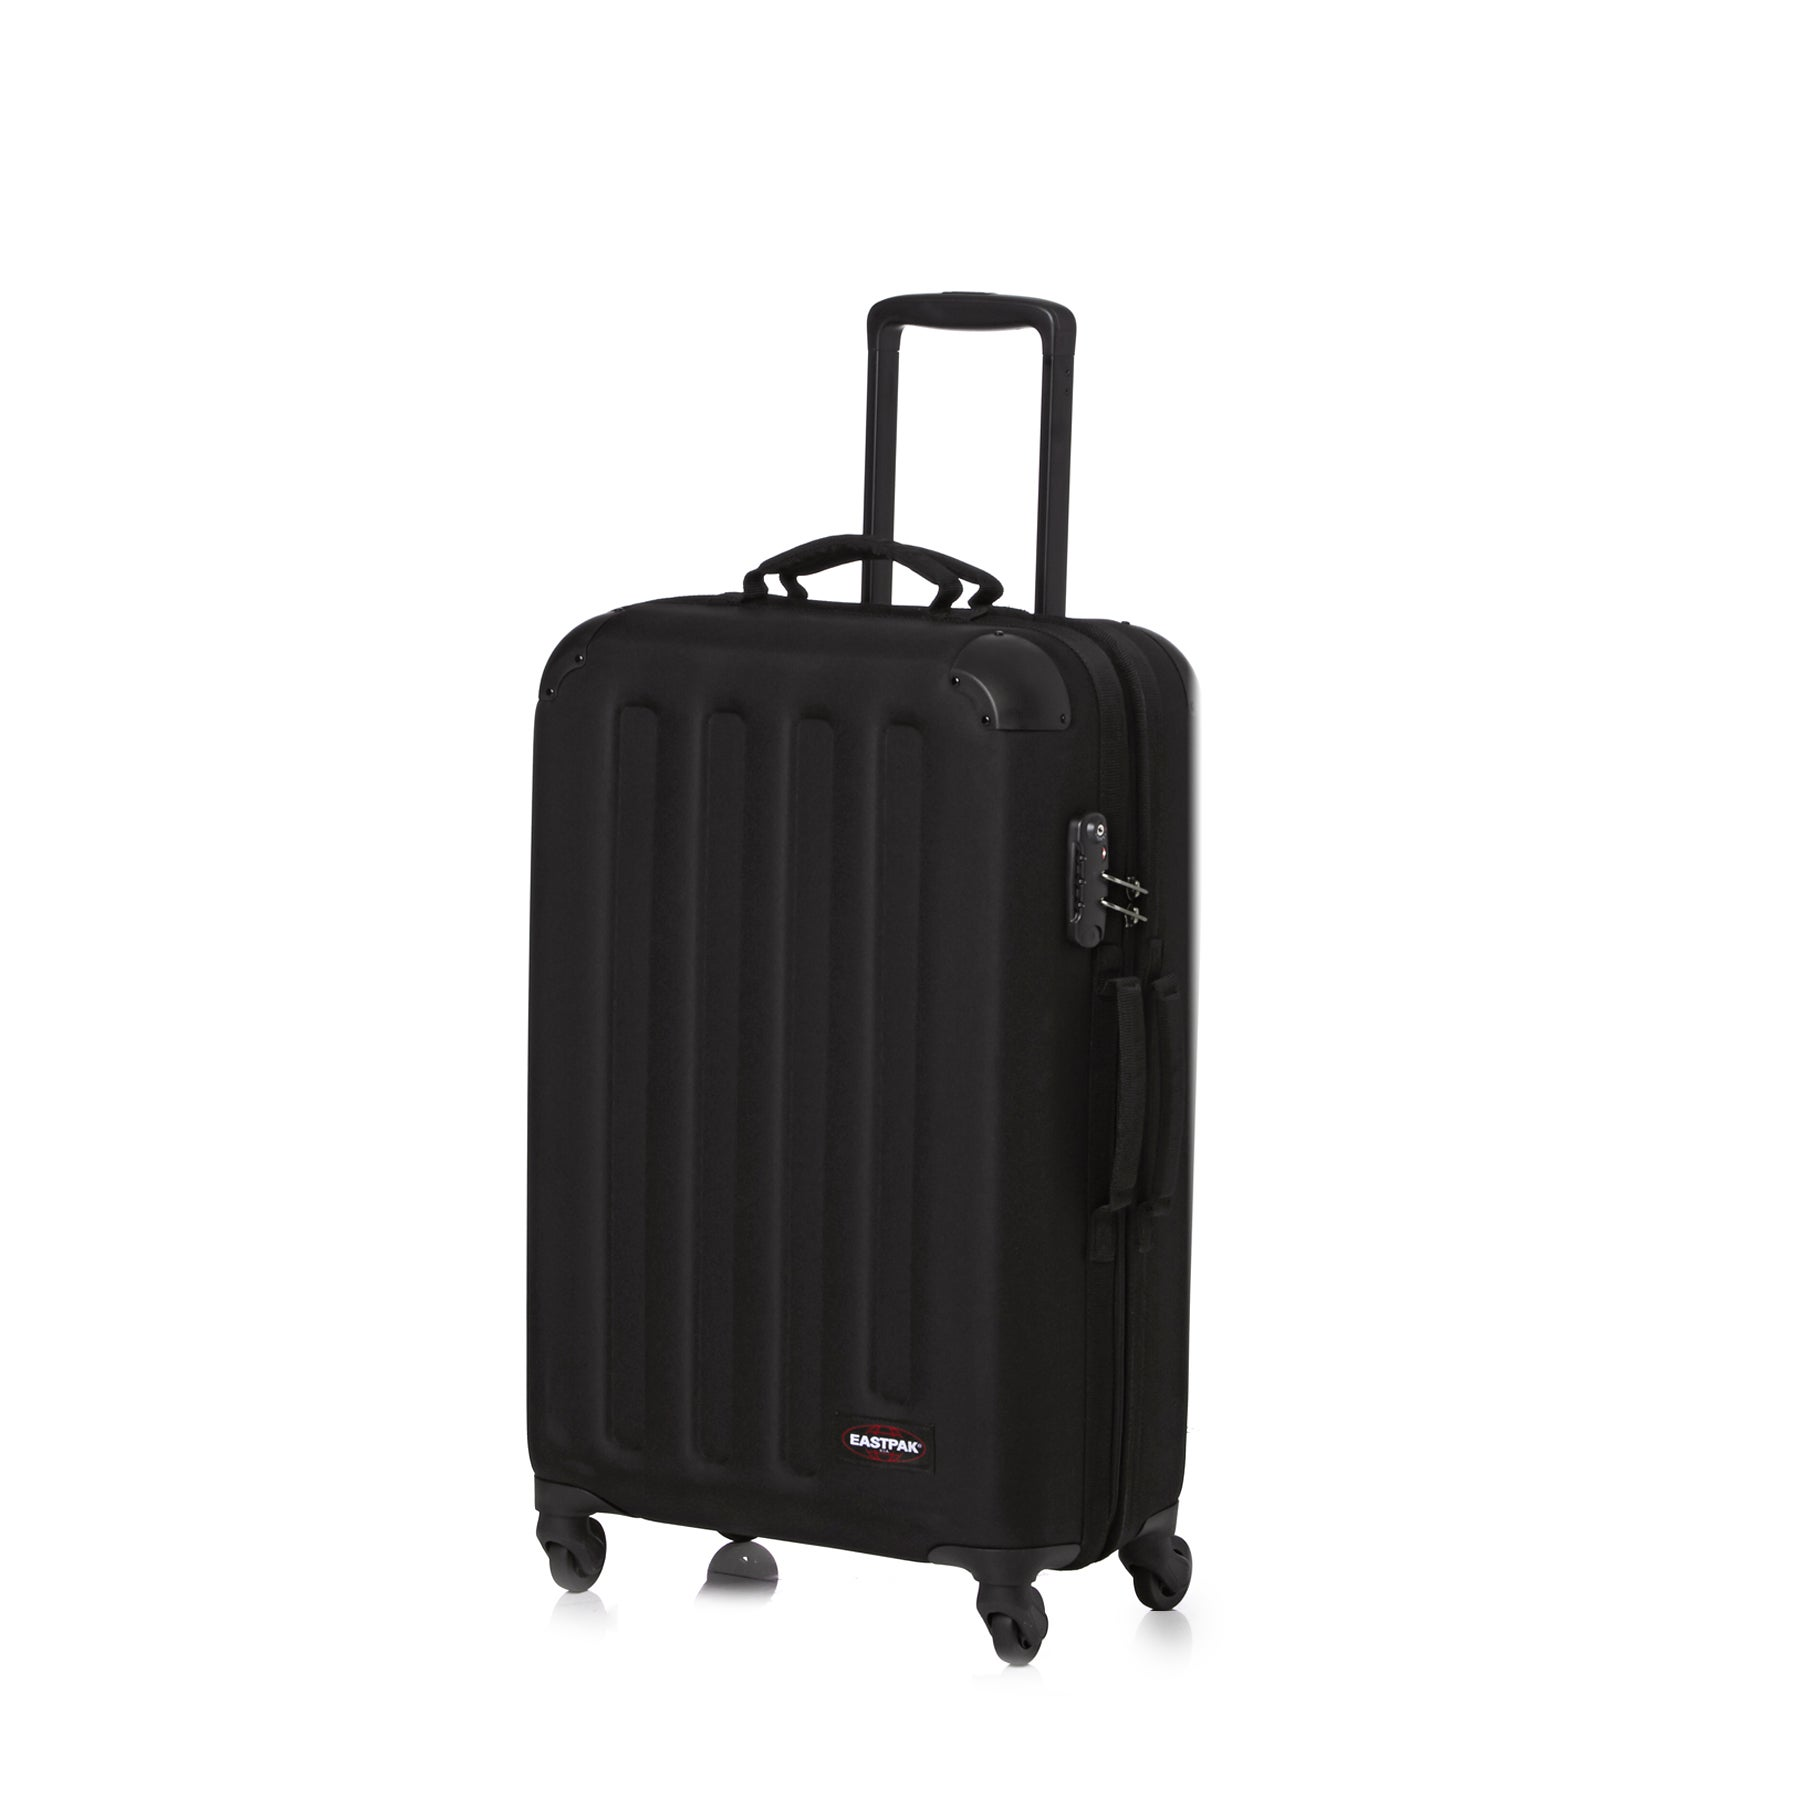 Eastpak Tranzshell M Luggage - Black